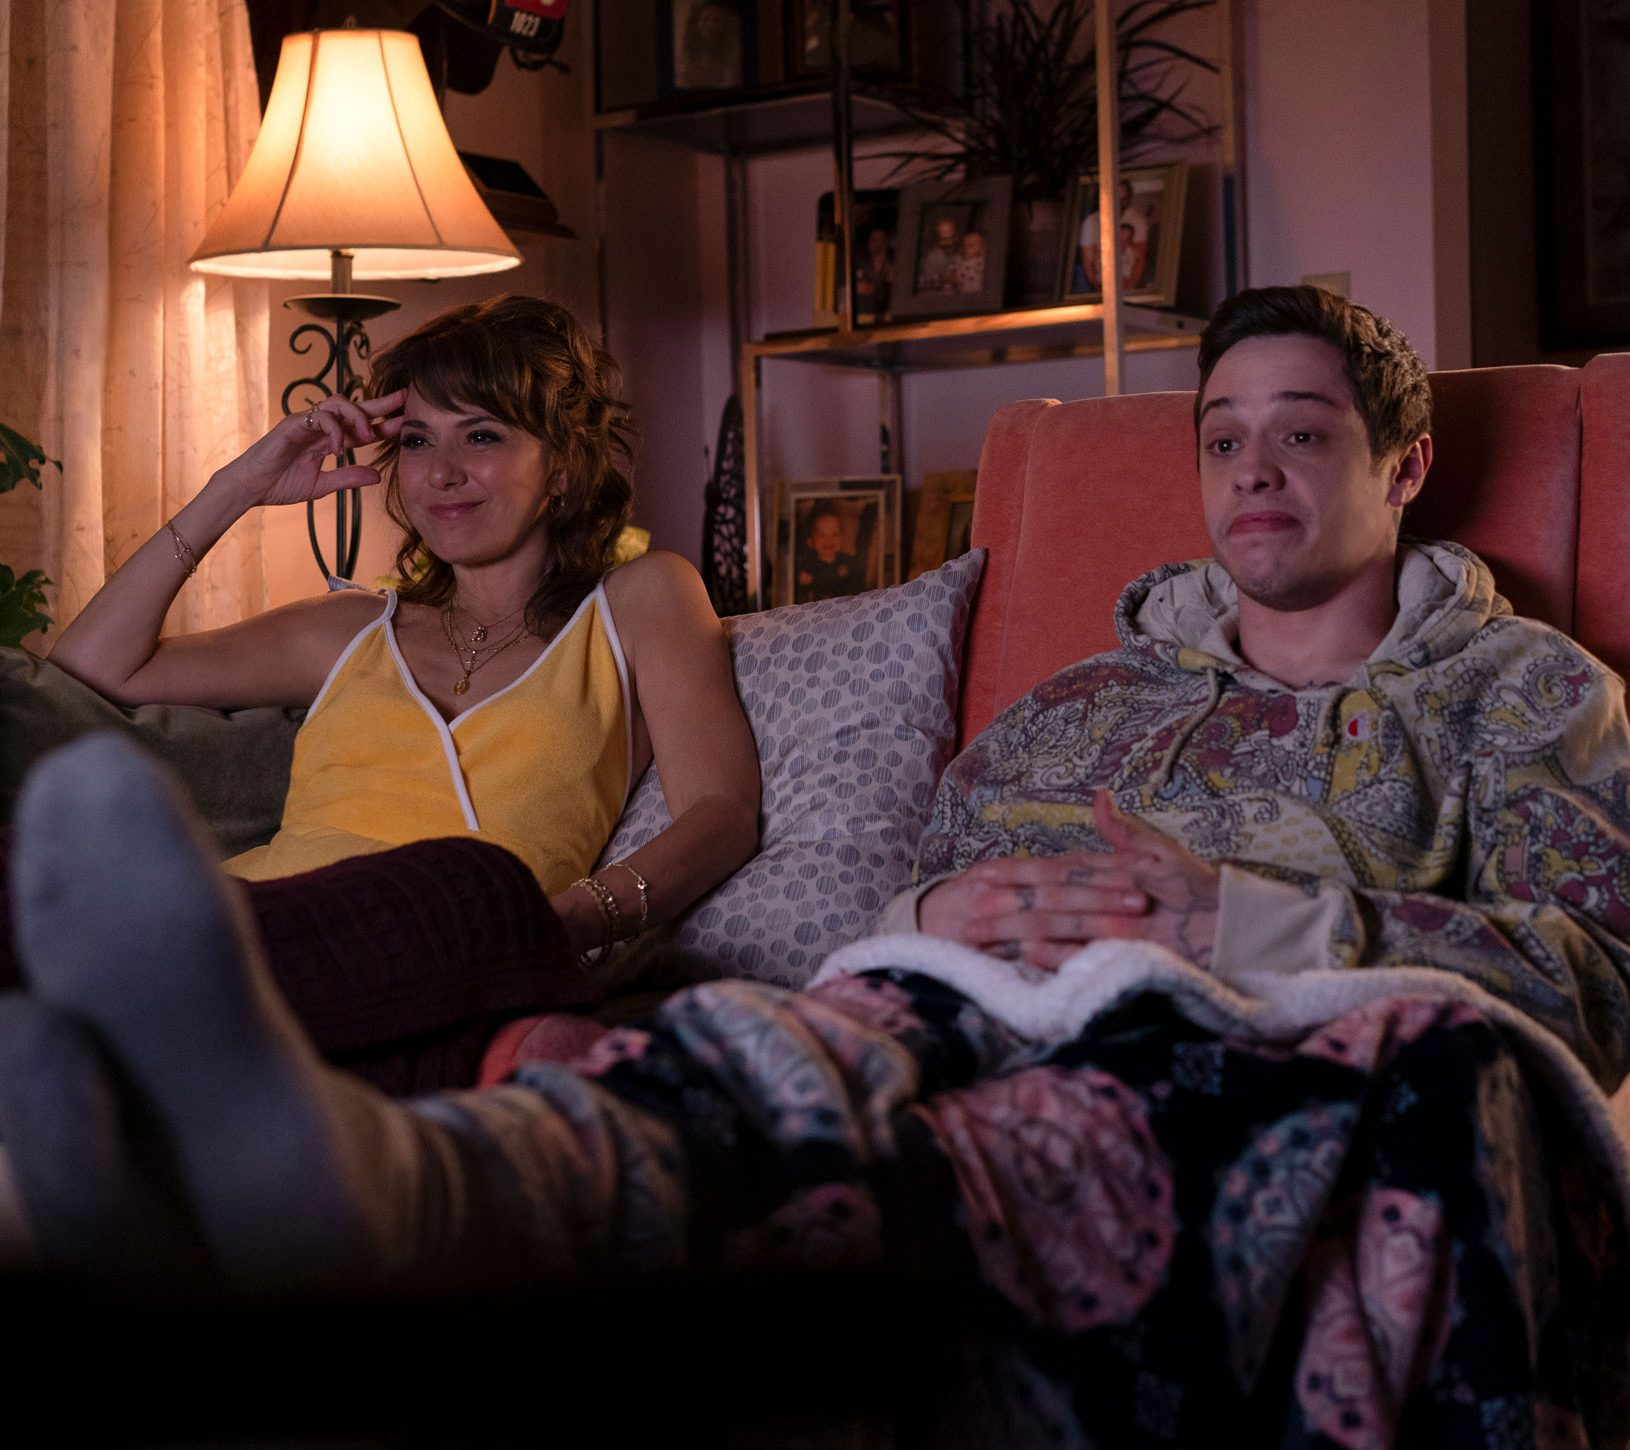 the king of staten island marisa tomei pete davidson e1608119925850 20 Things You Never Knew About Marisa Tomei